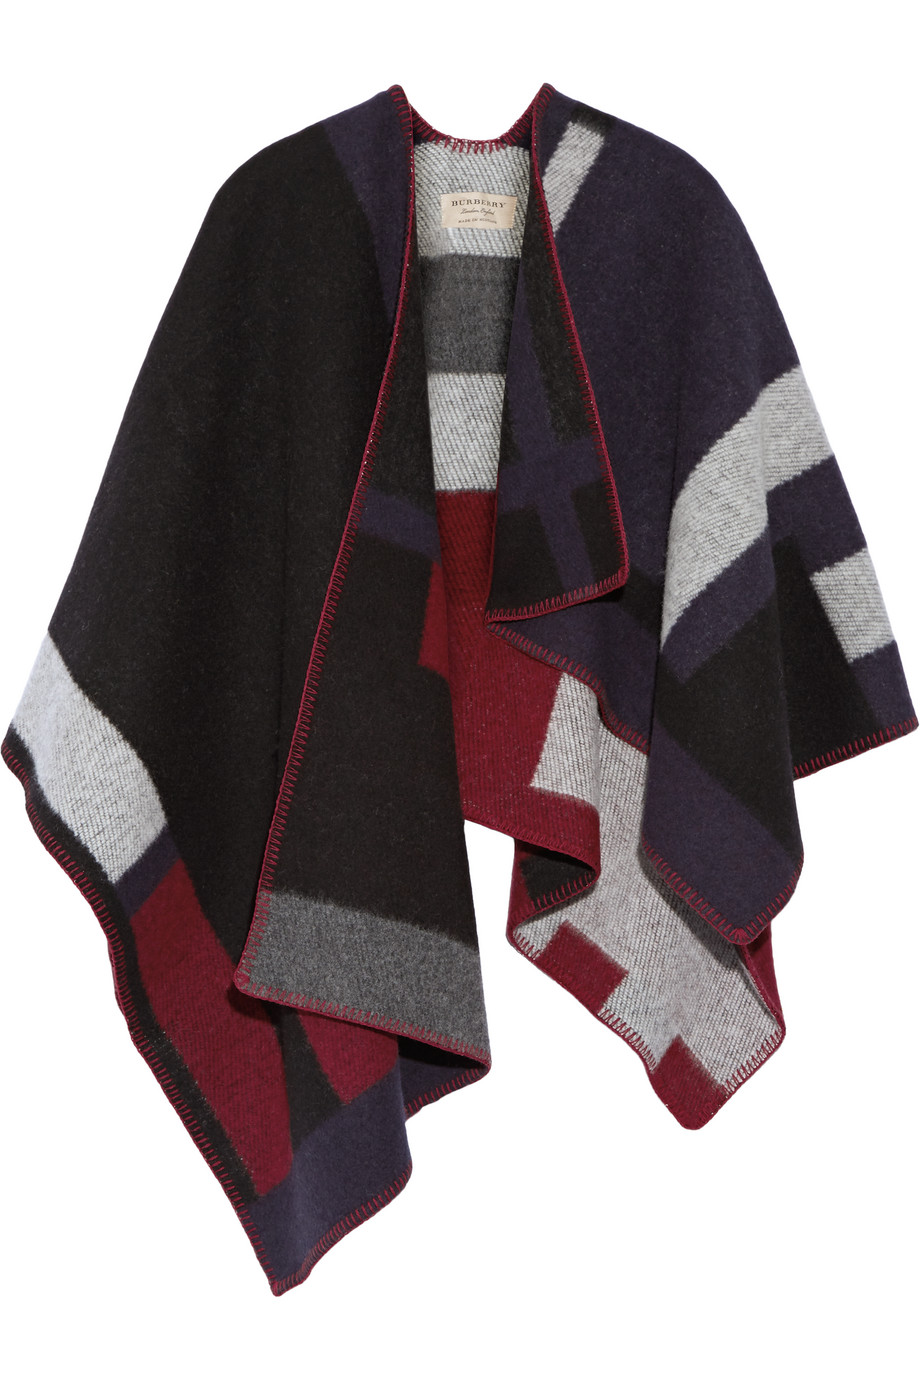 Checked Wool and Cashmere-Blend Wrap, Burberry Prorsum, Navy, Women's